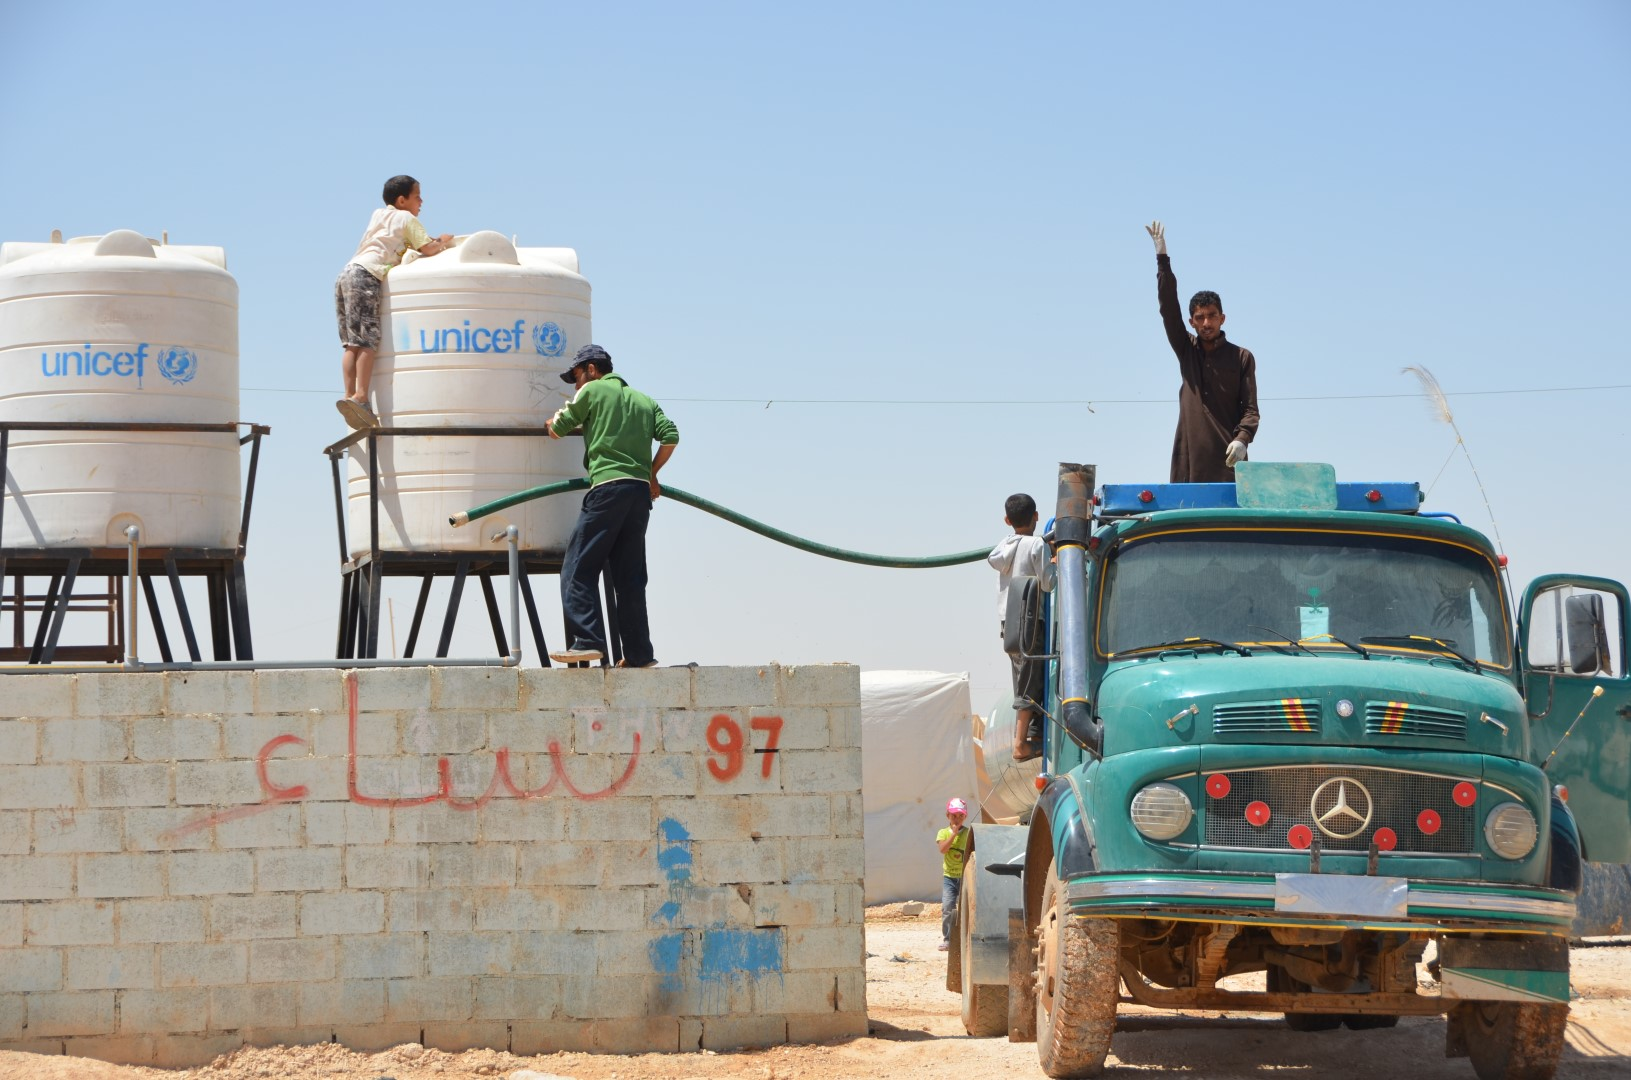 Every day, contractors truck nearly four million litres of water to Za'atari camp for Syrian refugees in northern Jordan